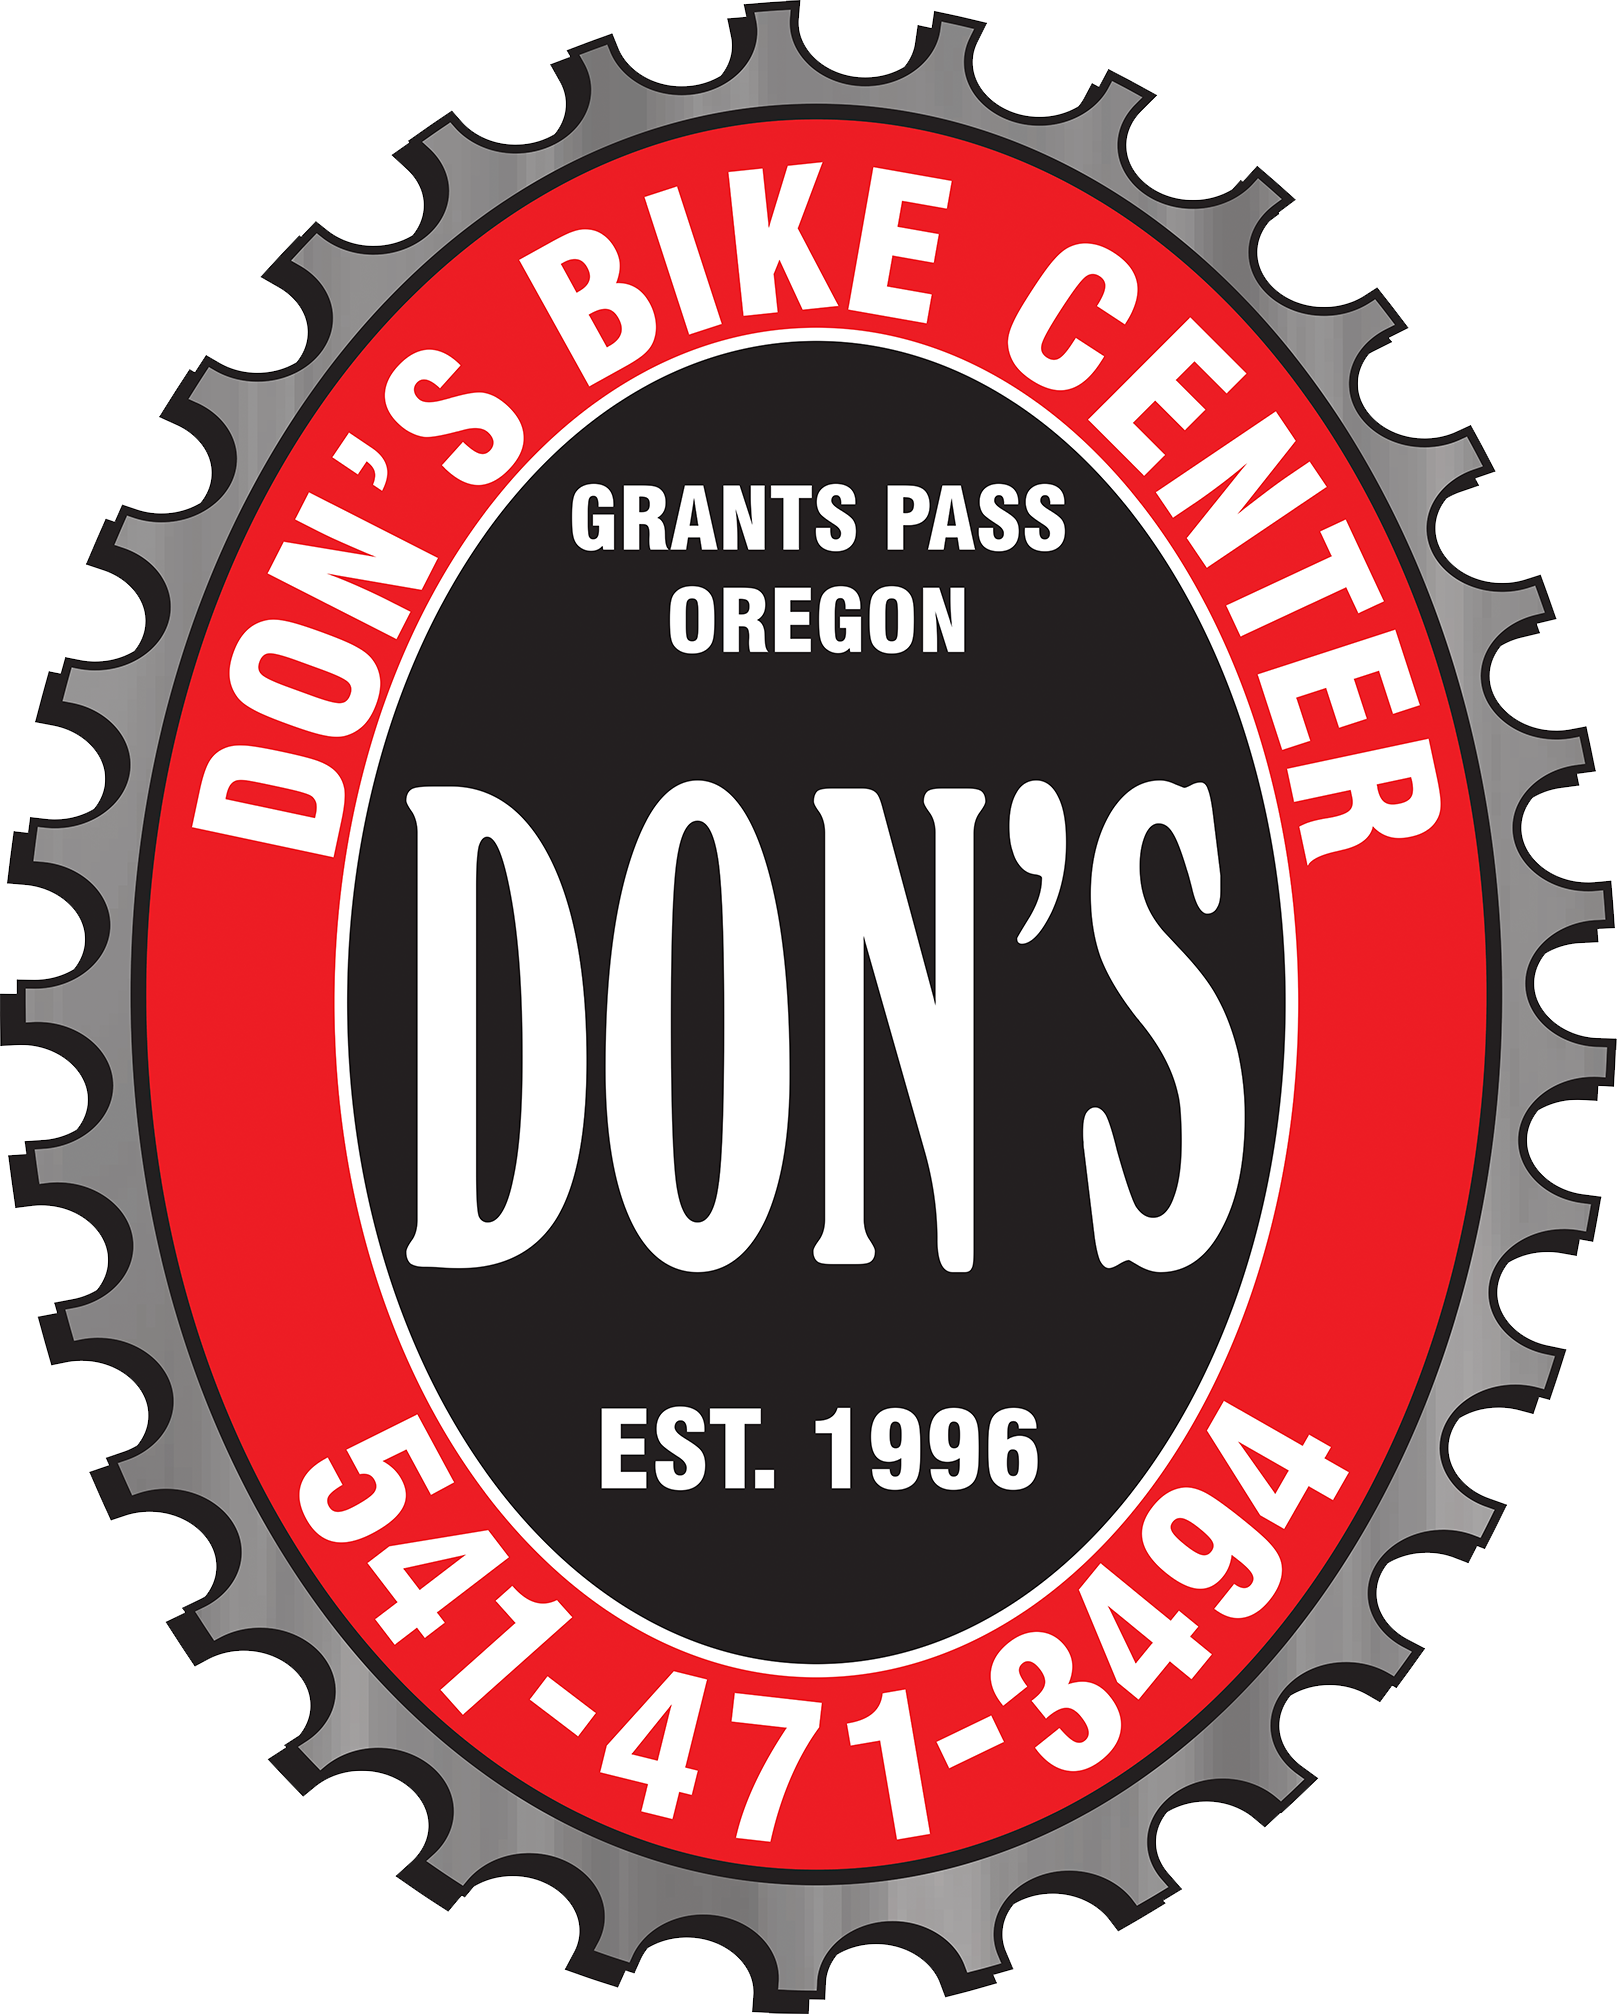 Don S Bike Center Grants Pass Oregon Specialized Redline We The People Fit S M Jamis Nirve Raleigh Cervelo Rogue Valley Southern Oregon Mountain Road Bmx Commuter Adventure Gravel Touring